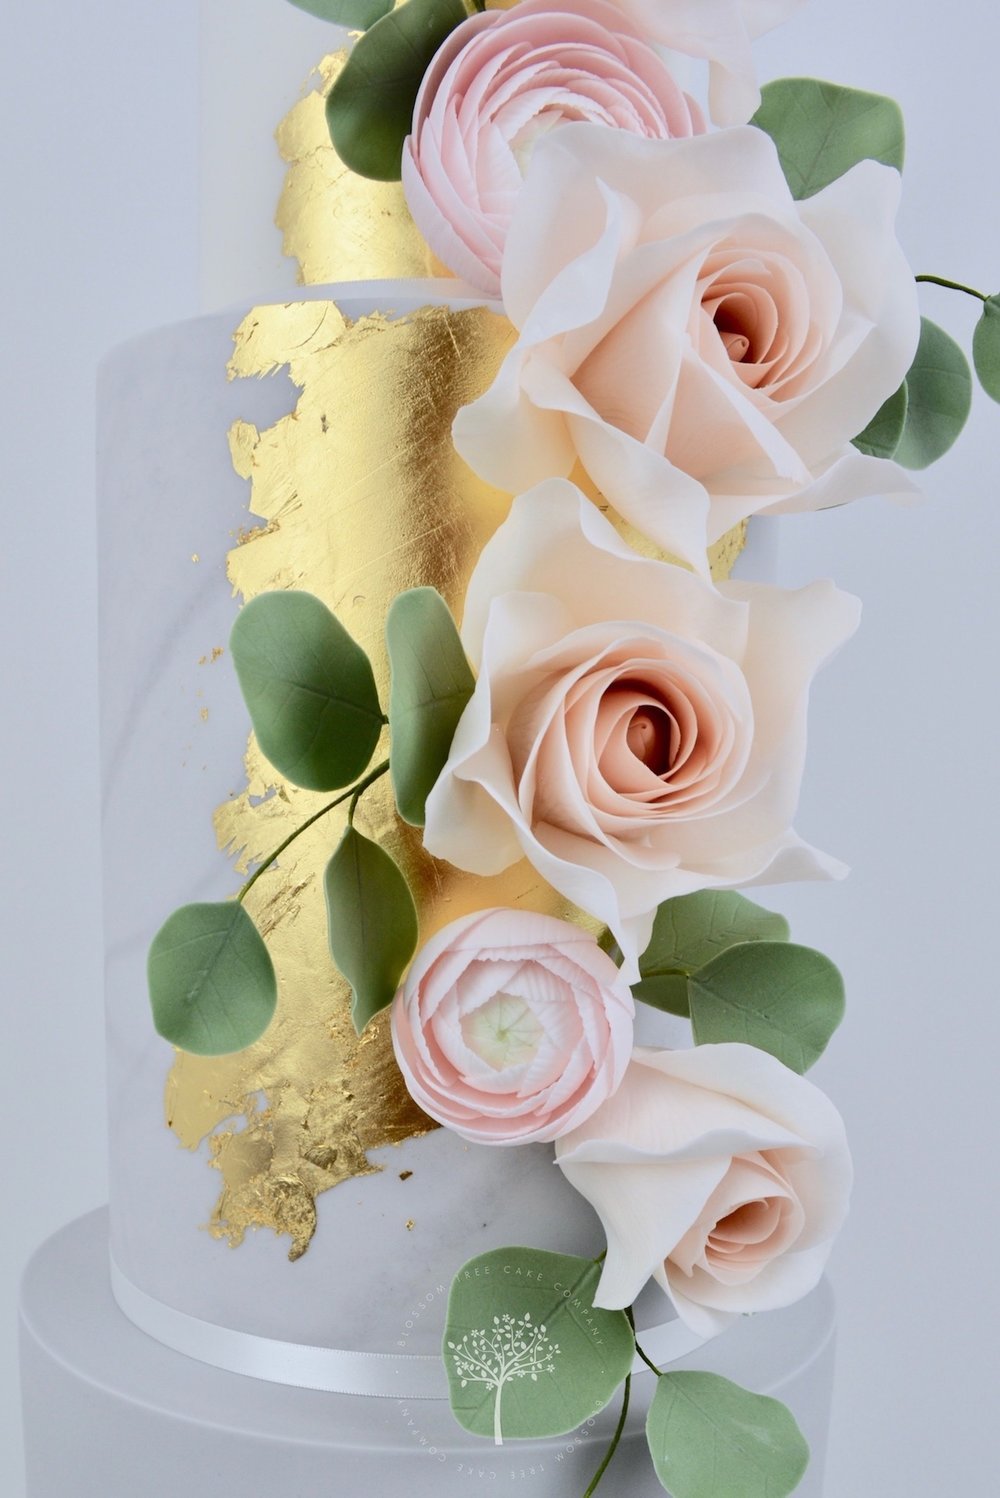 Rose Gold and Ranunculus wedding cake by Blossom Tree Cake Company Harrogate North Yorkshire - sugar flowers.jpg